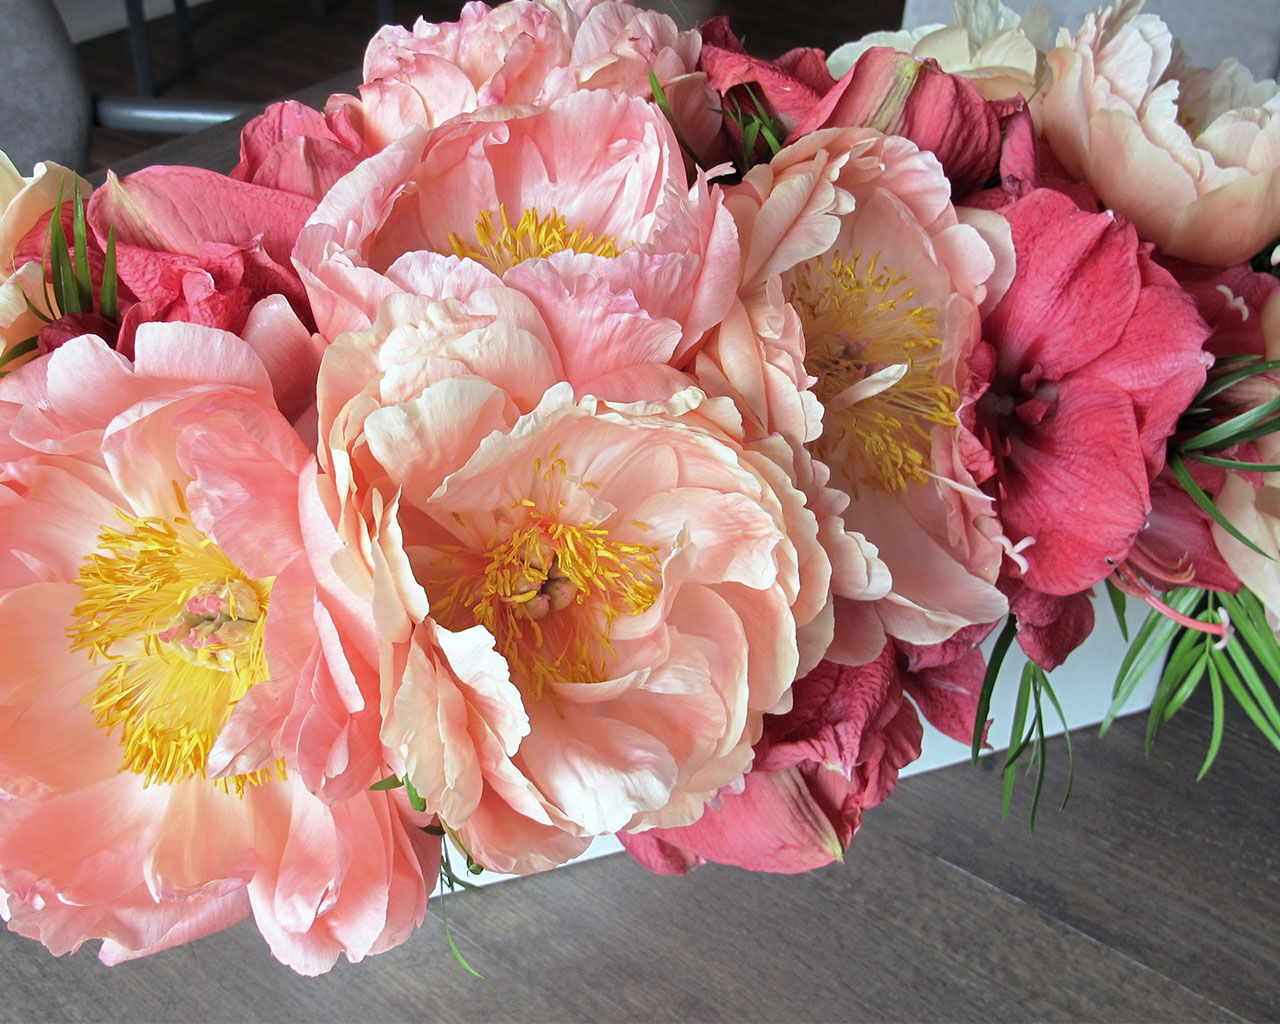 giant peonies at HMR Designs in Chicago